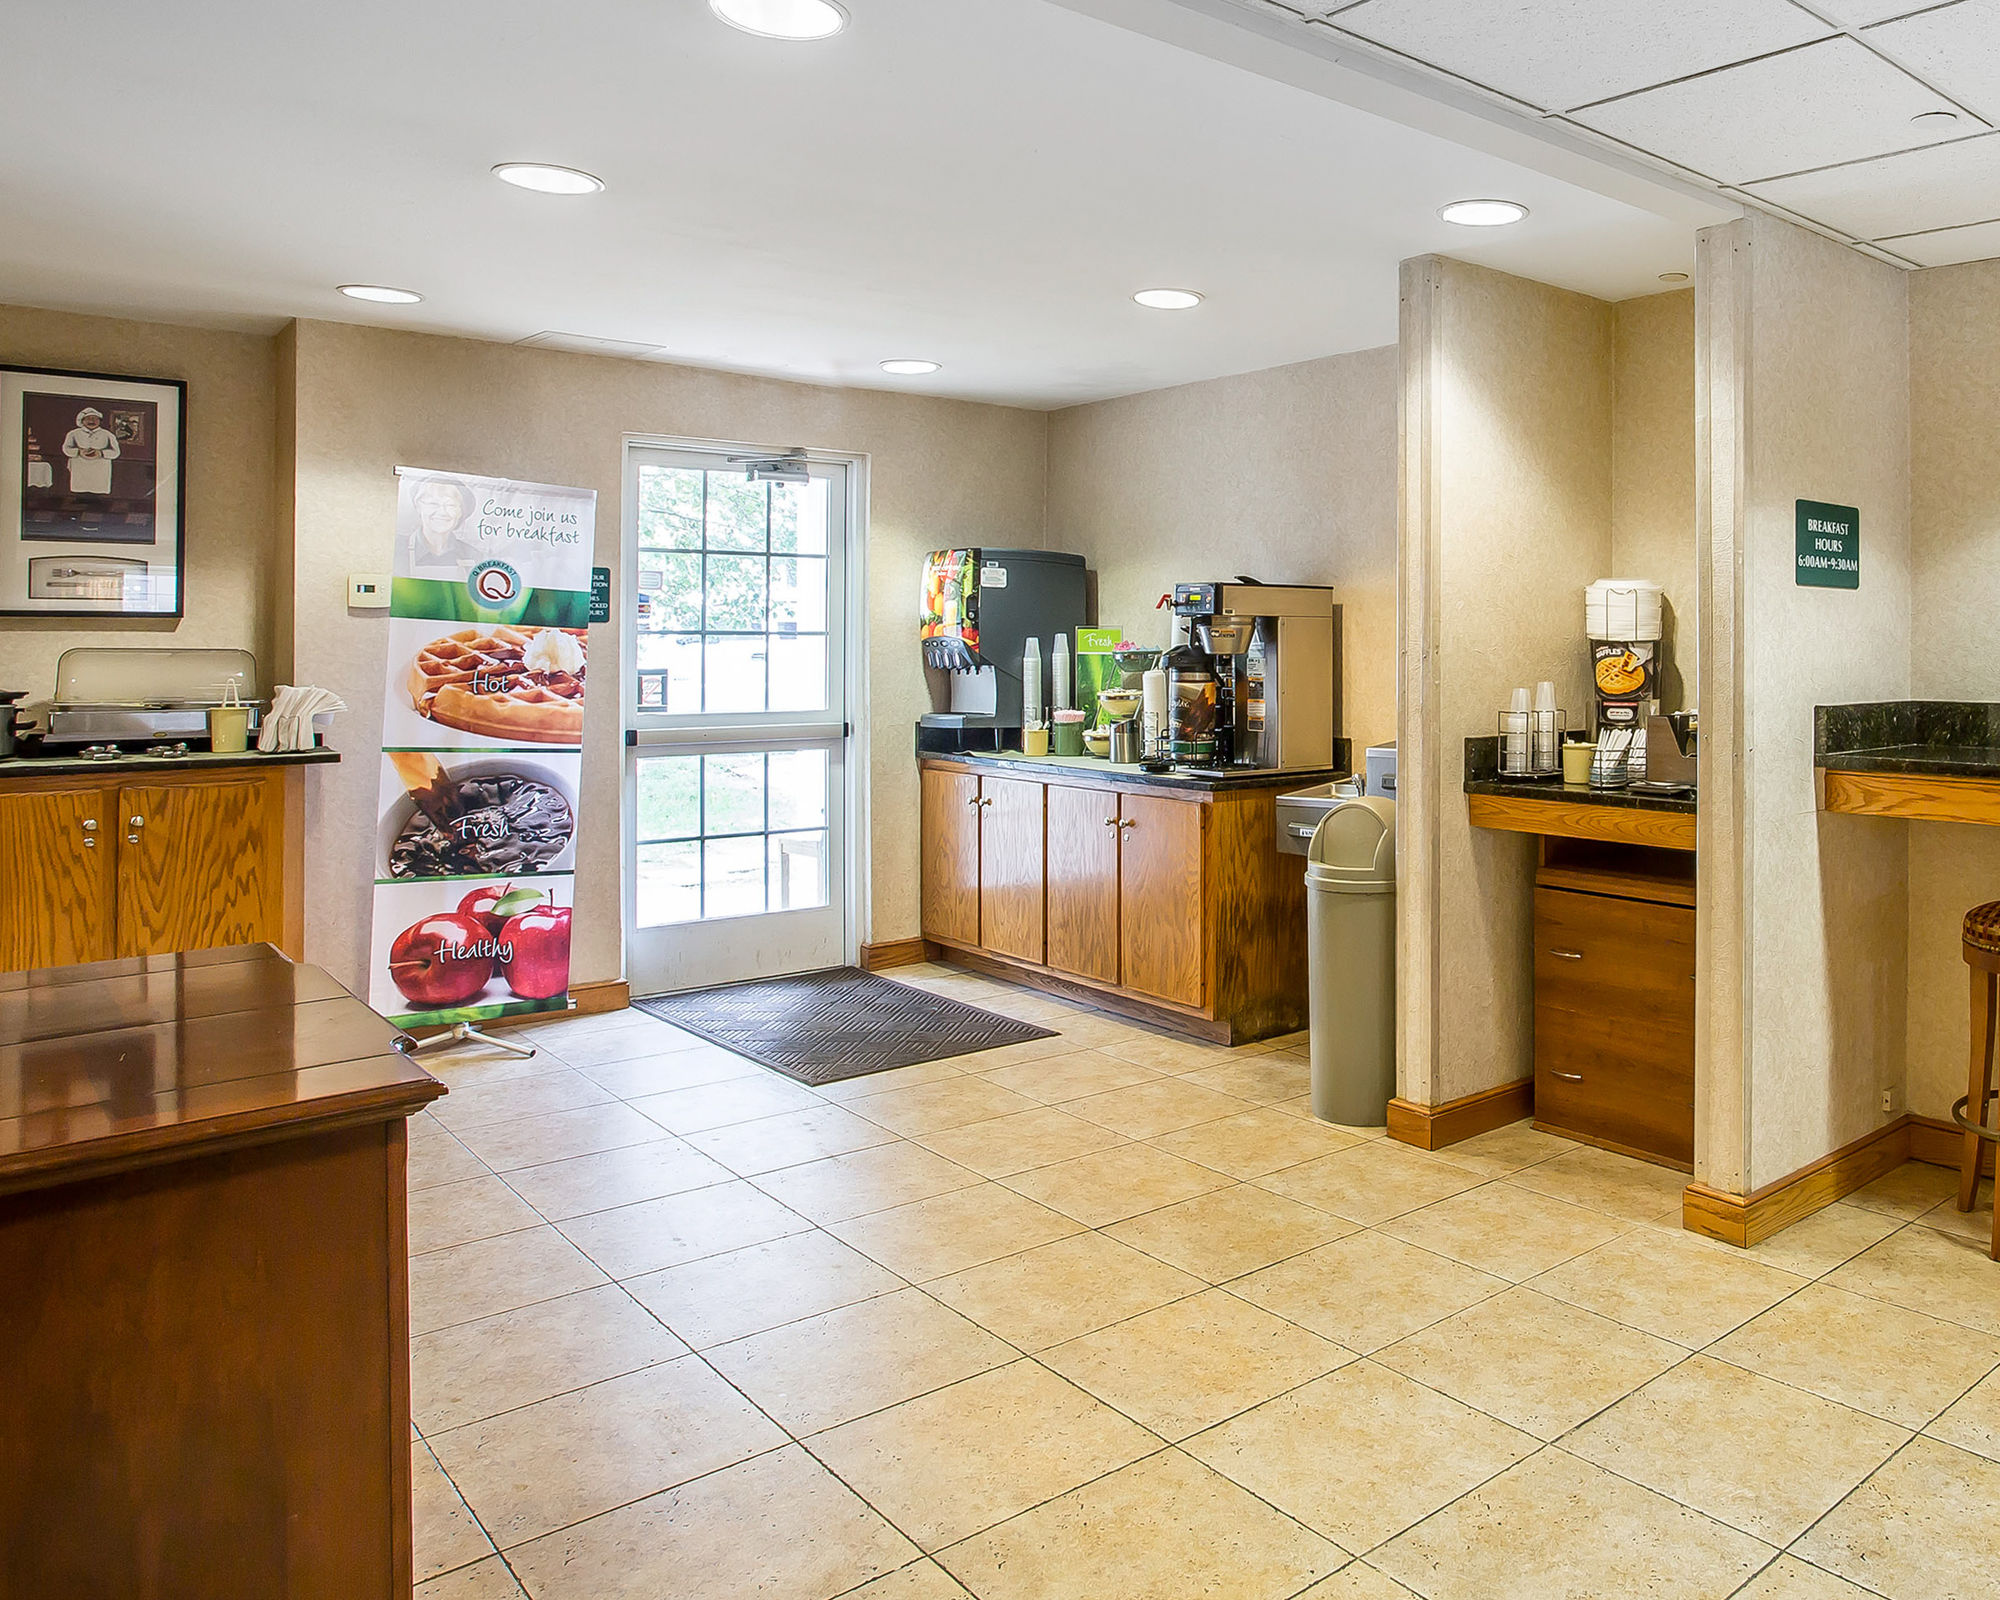 Quality Inn And Suites in Mt Juliet, TN